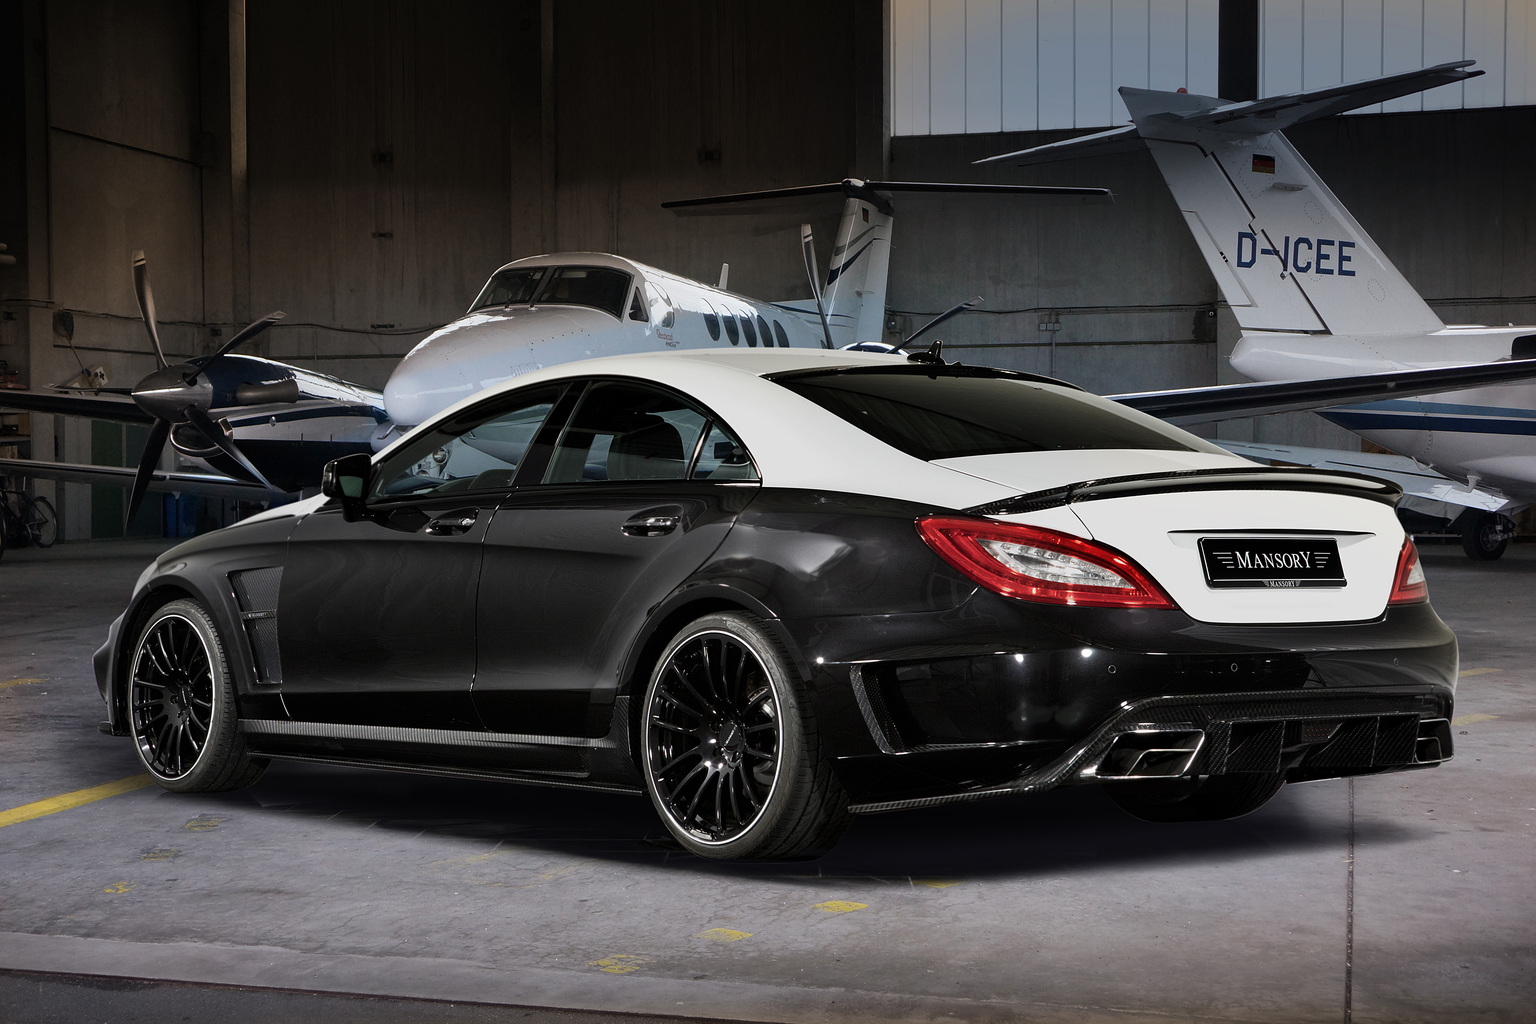 2013 Mansory Cls 63 Amg Mercedes Benz Supercars Net